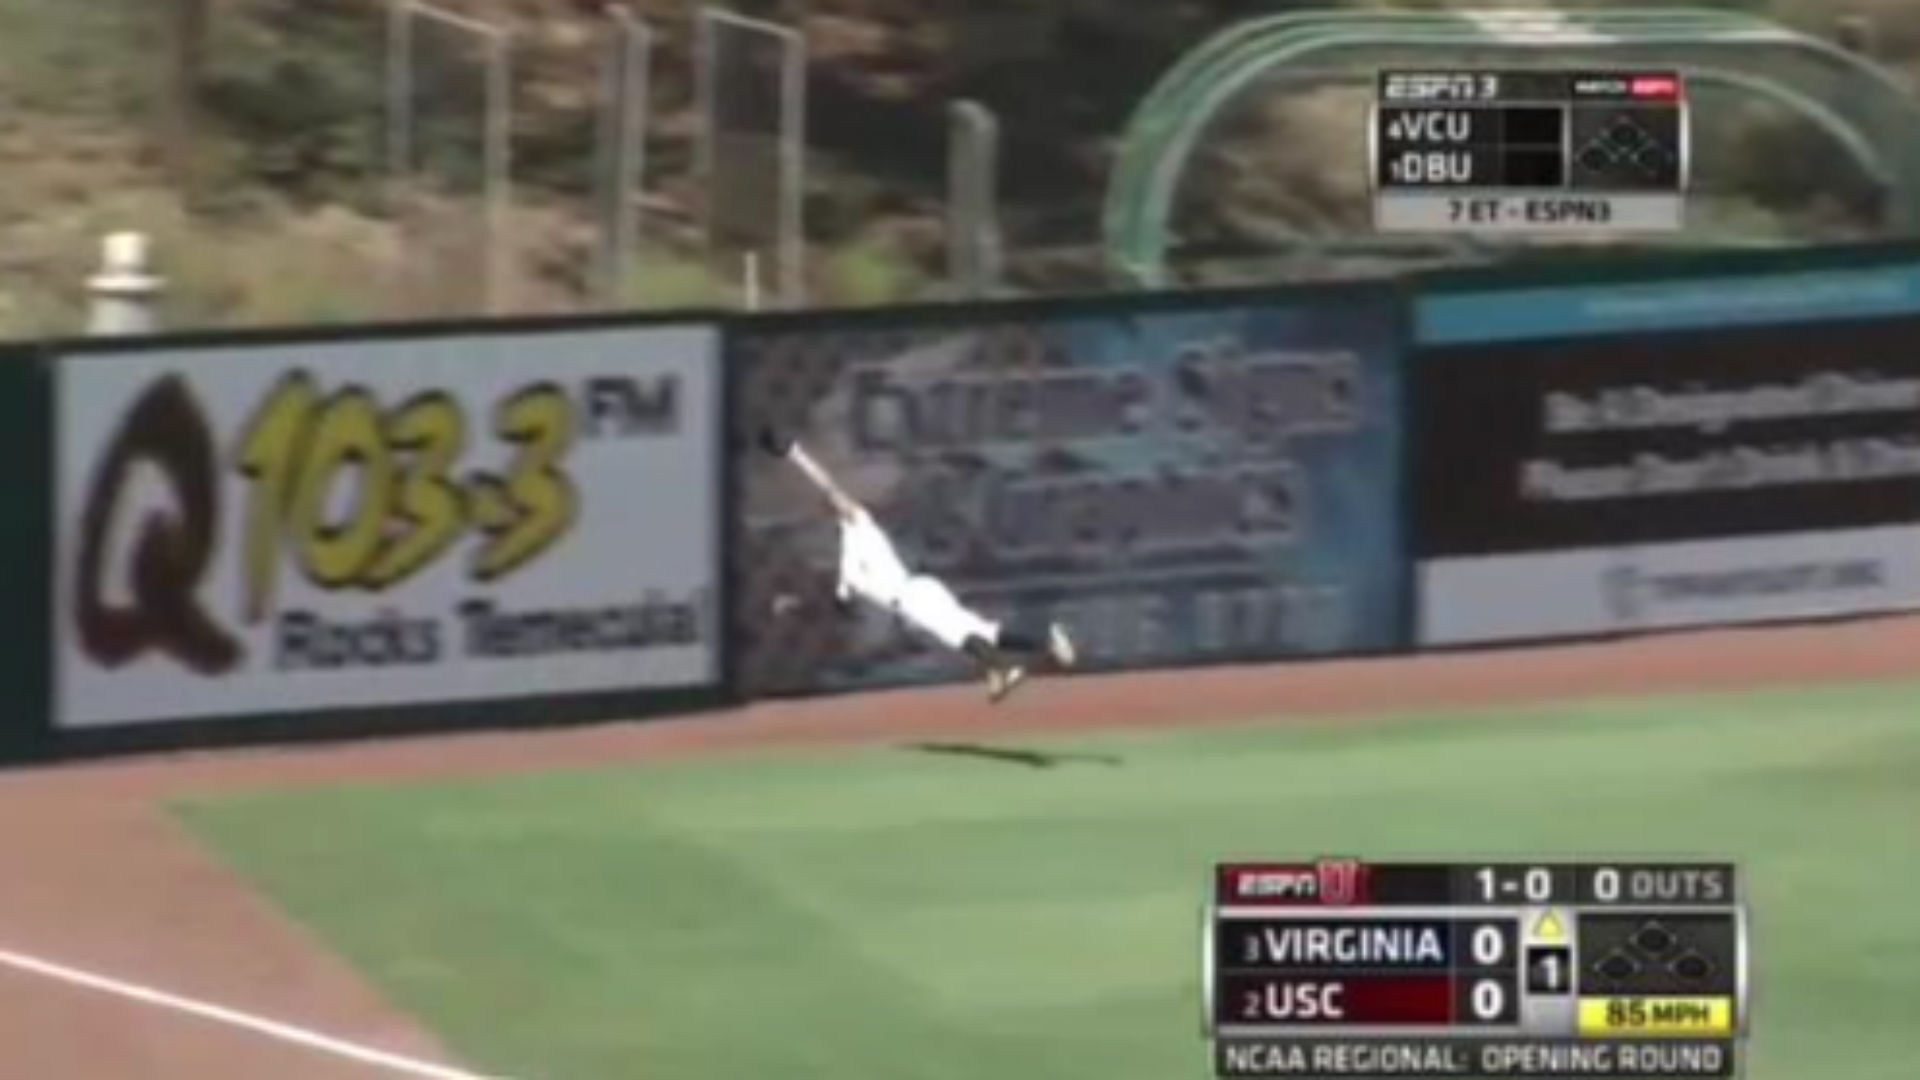 Top 5 plays from day 1 of the NCAA Baseball Tournament